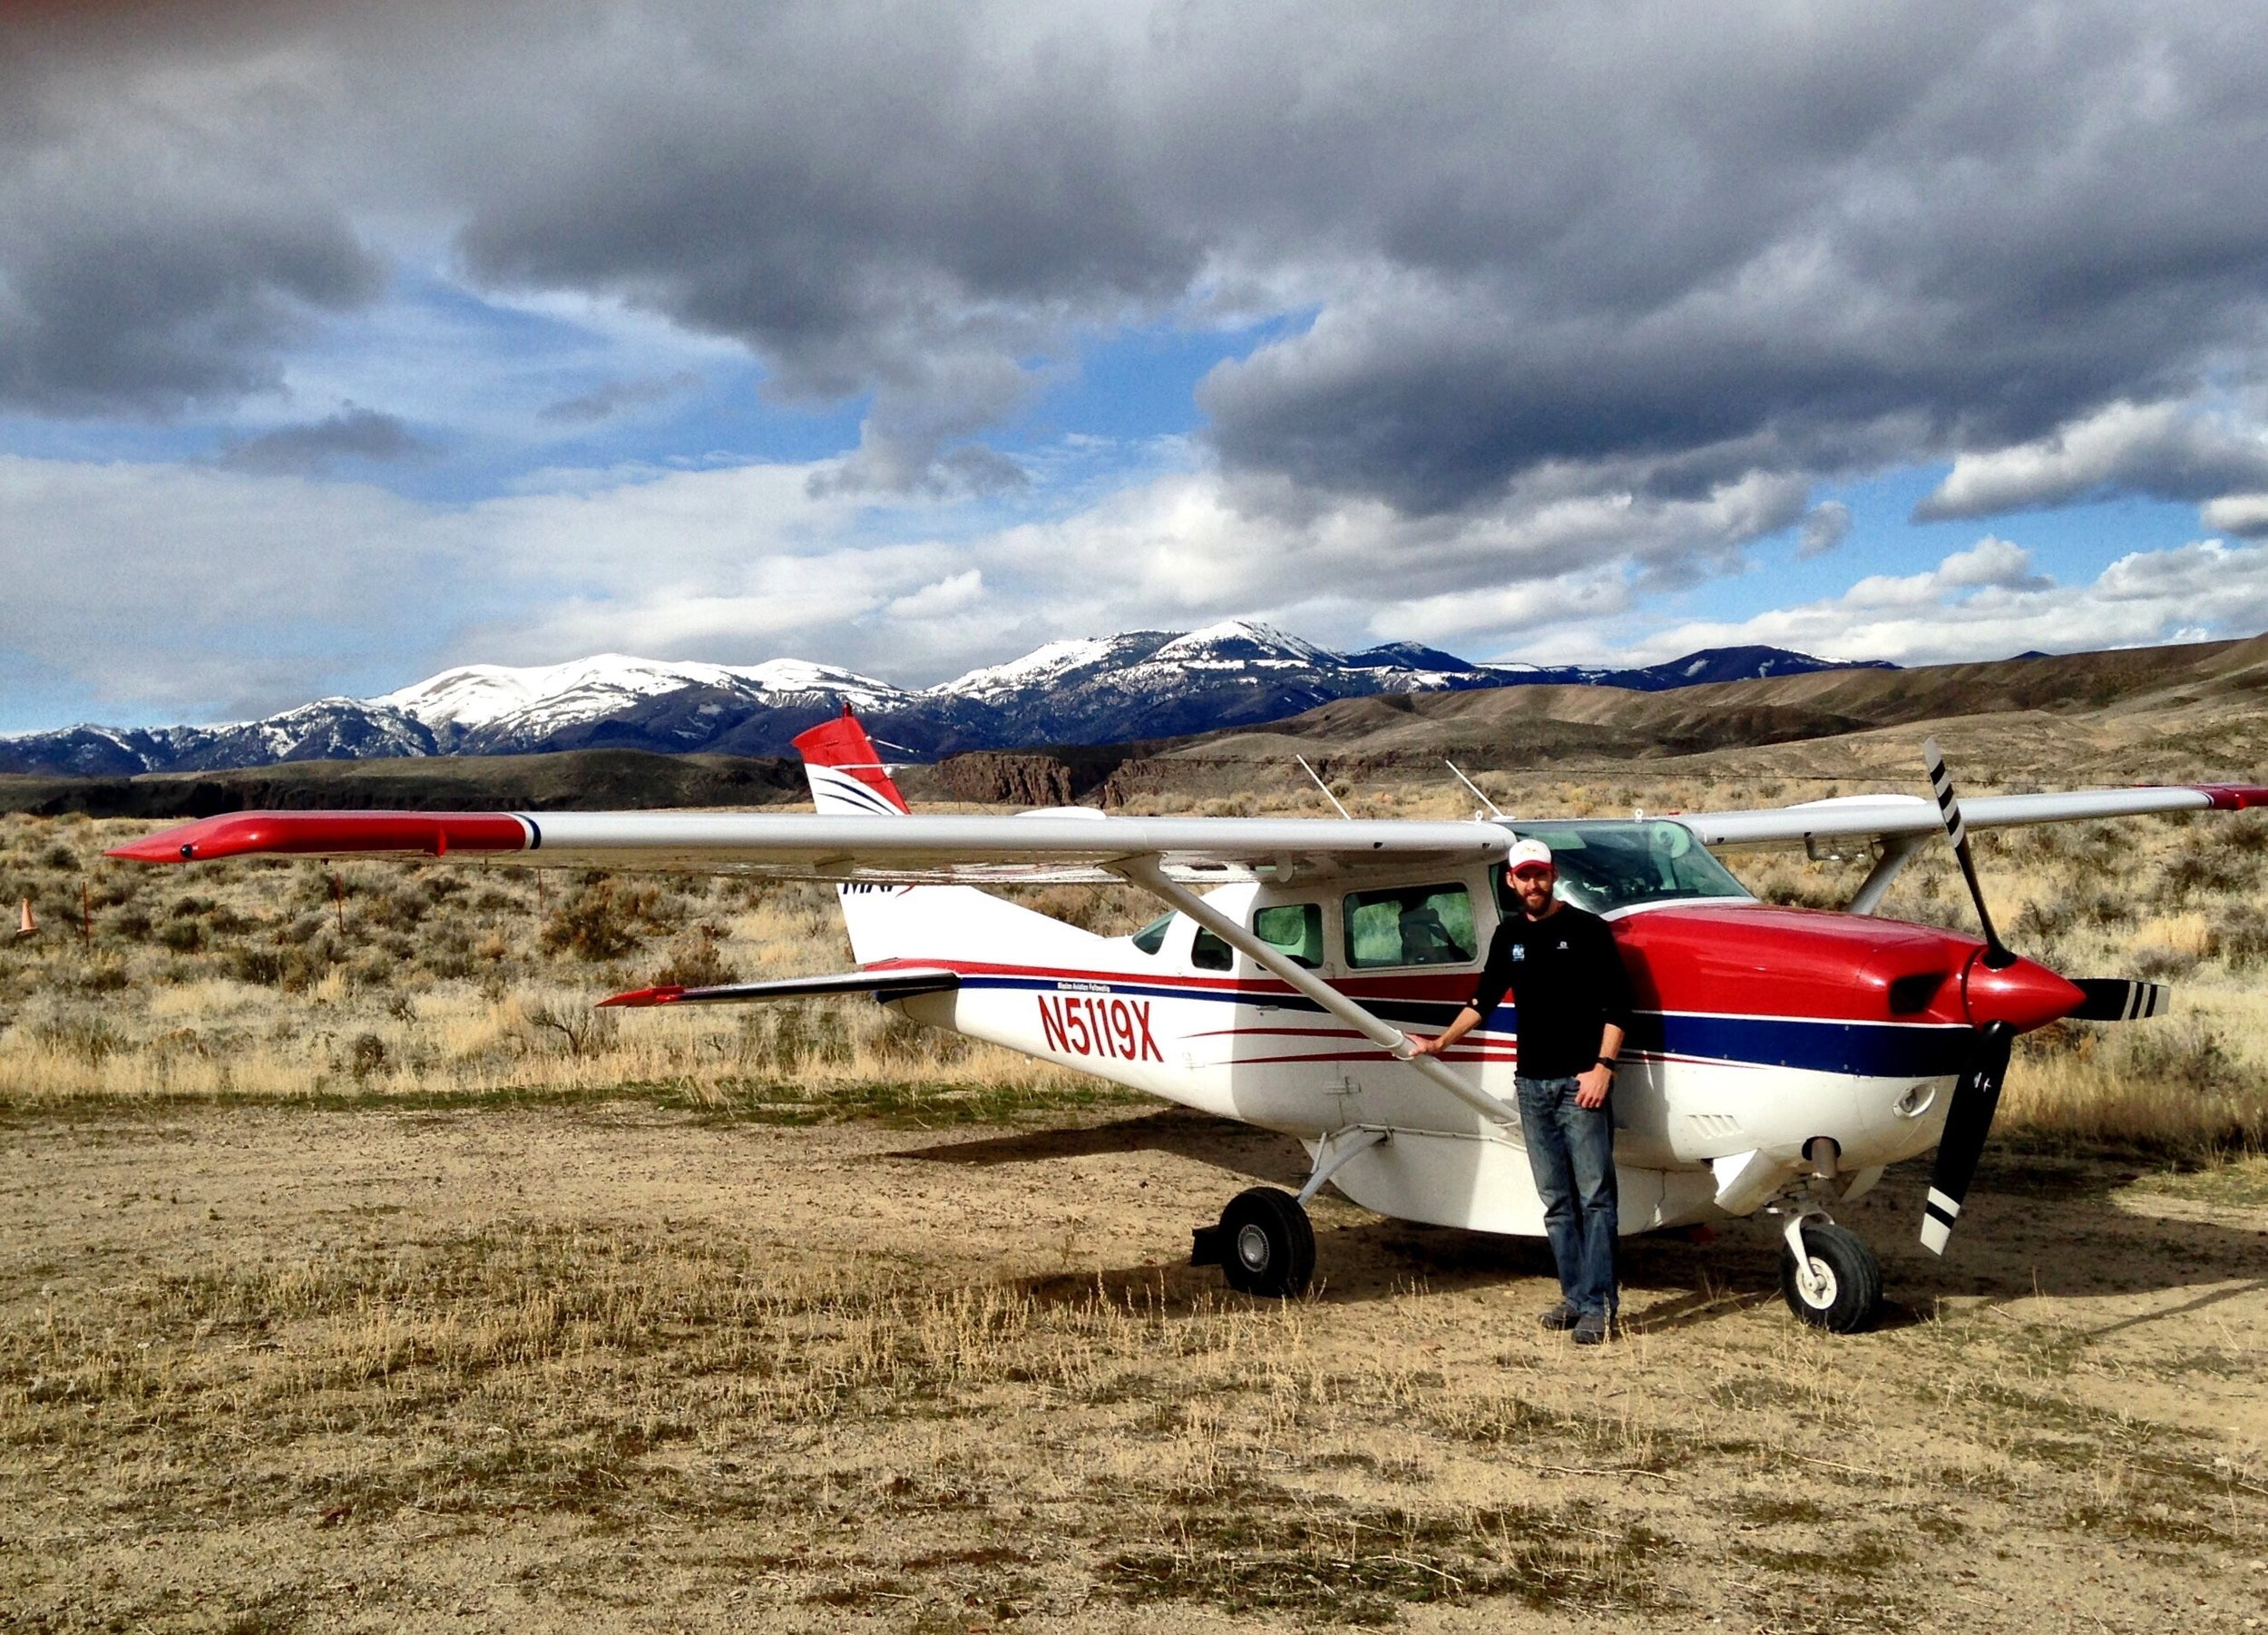 The airstrips in Idaho have the best names. This was at a strip called 'Hesitation.'